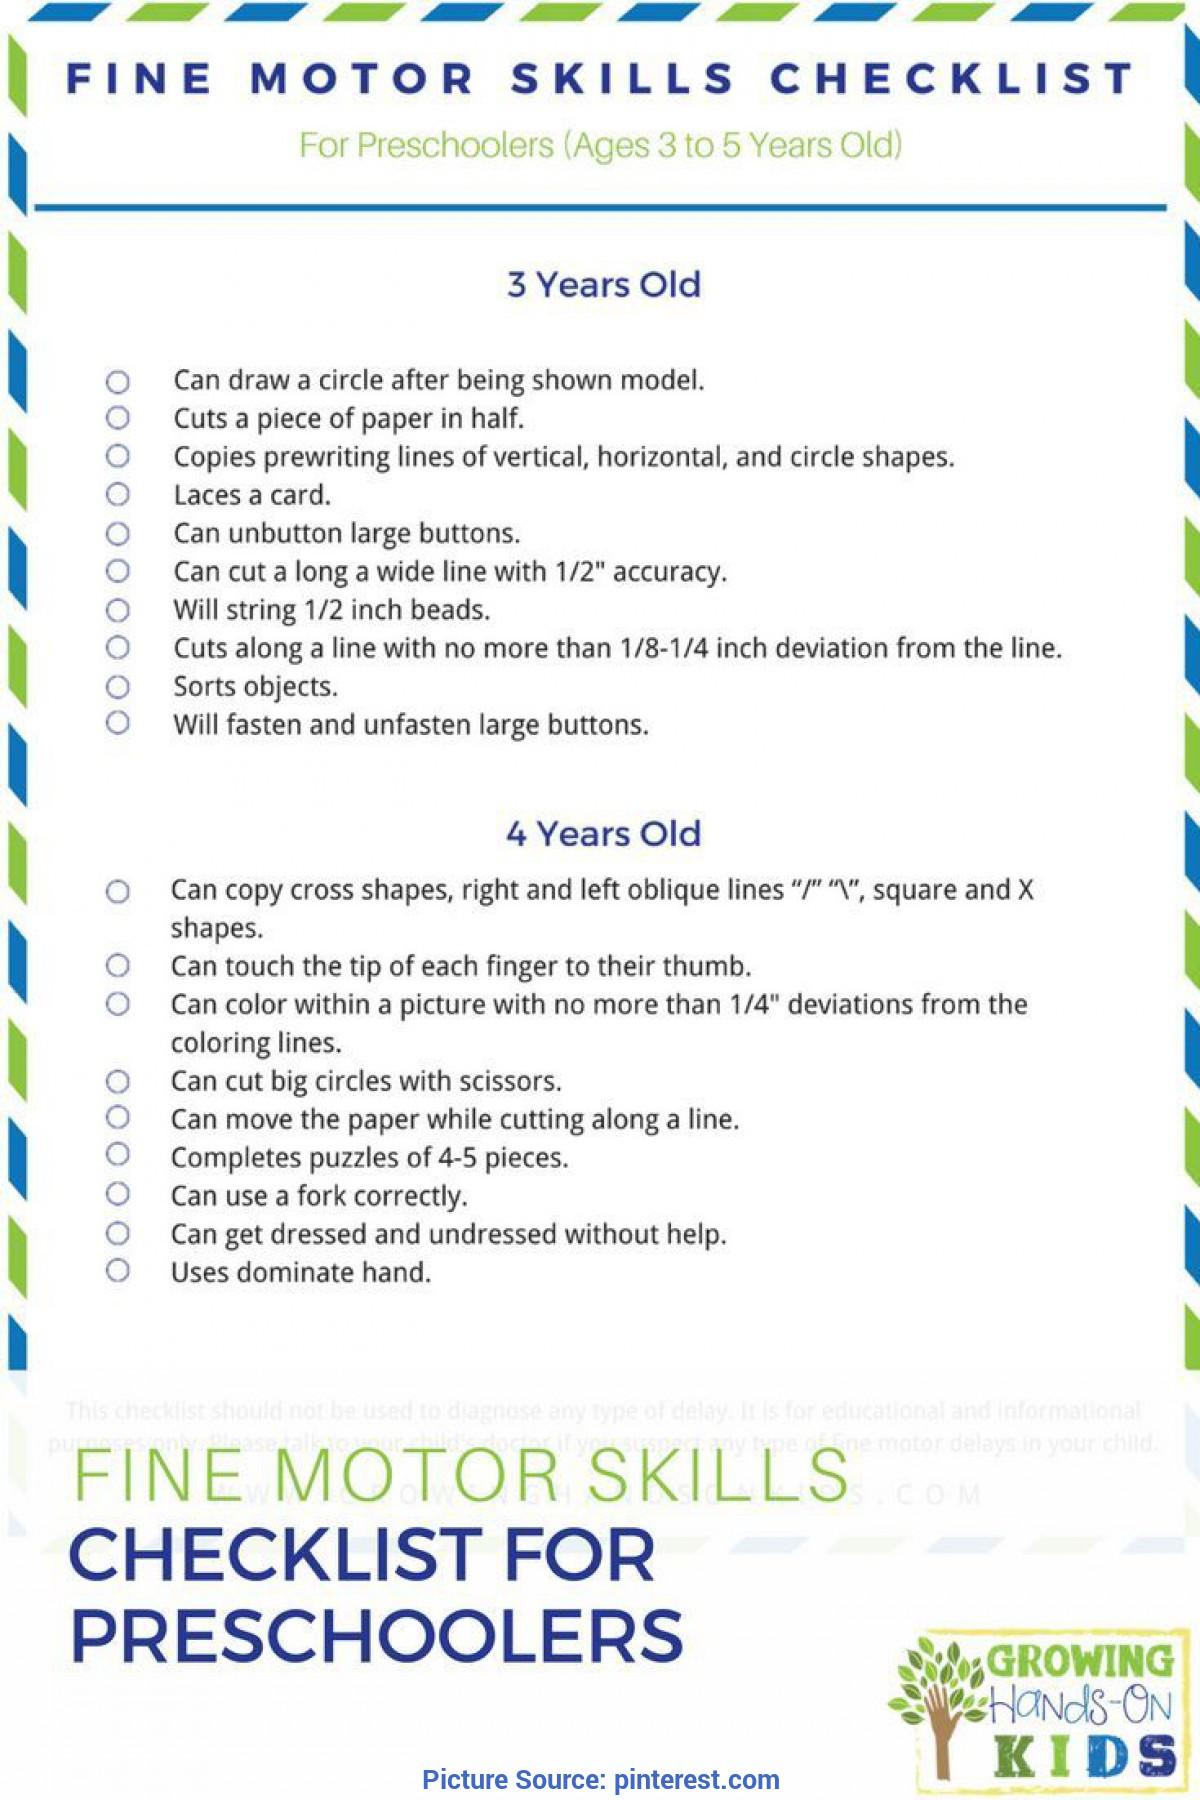 Unusual Preschool Lessons For 4 Year Olds Fine Motor Skills Checklist For Preschoolers (Ages 3-5 Years Ol